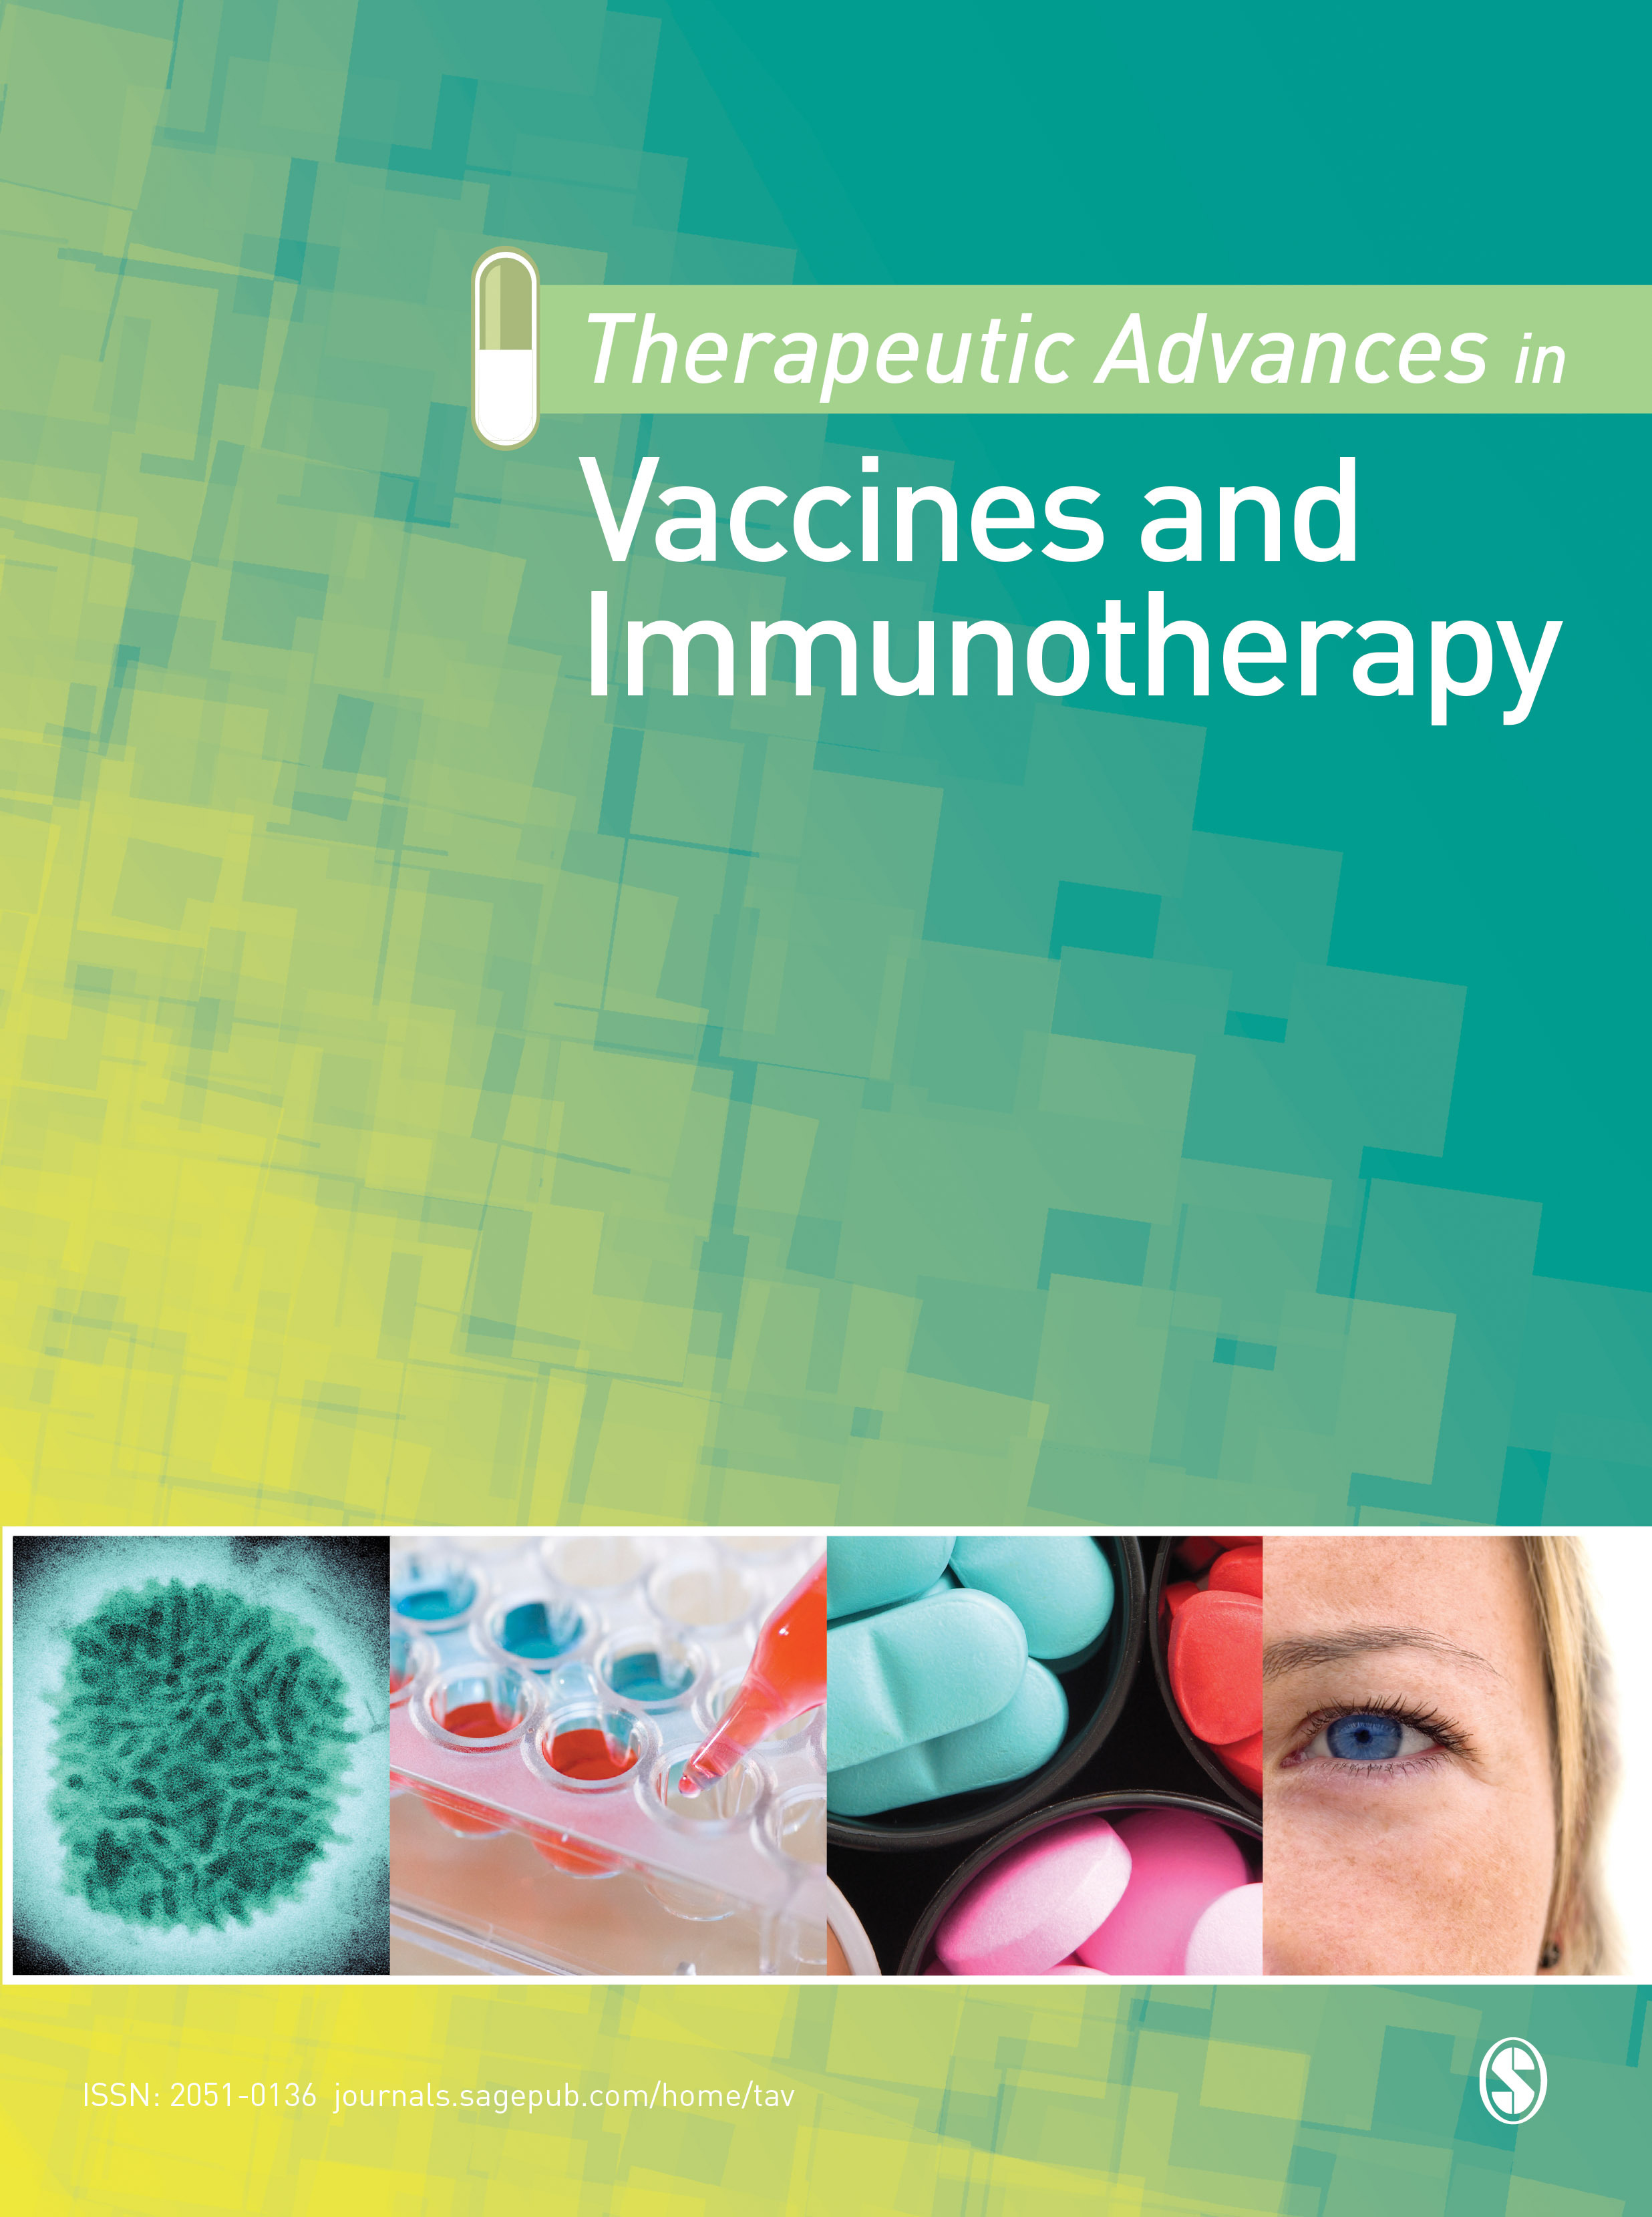 Therapeutic Advances in Vaccines and Immunotherapy